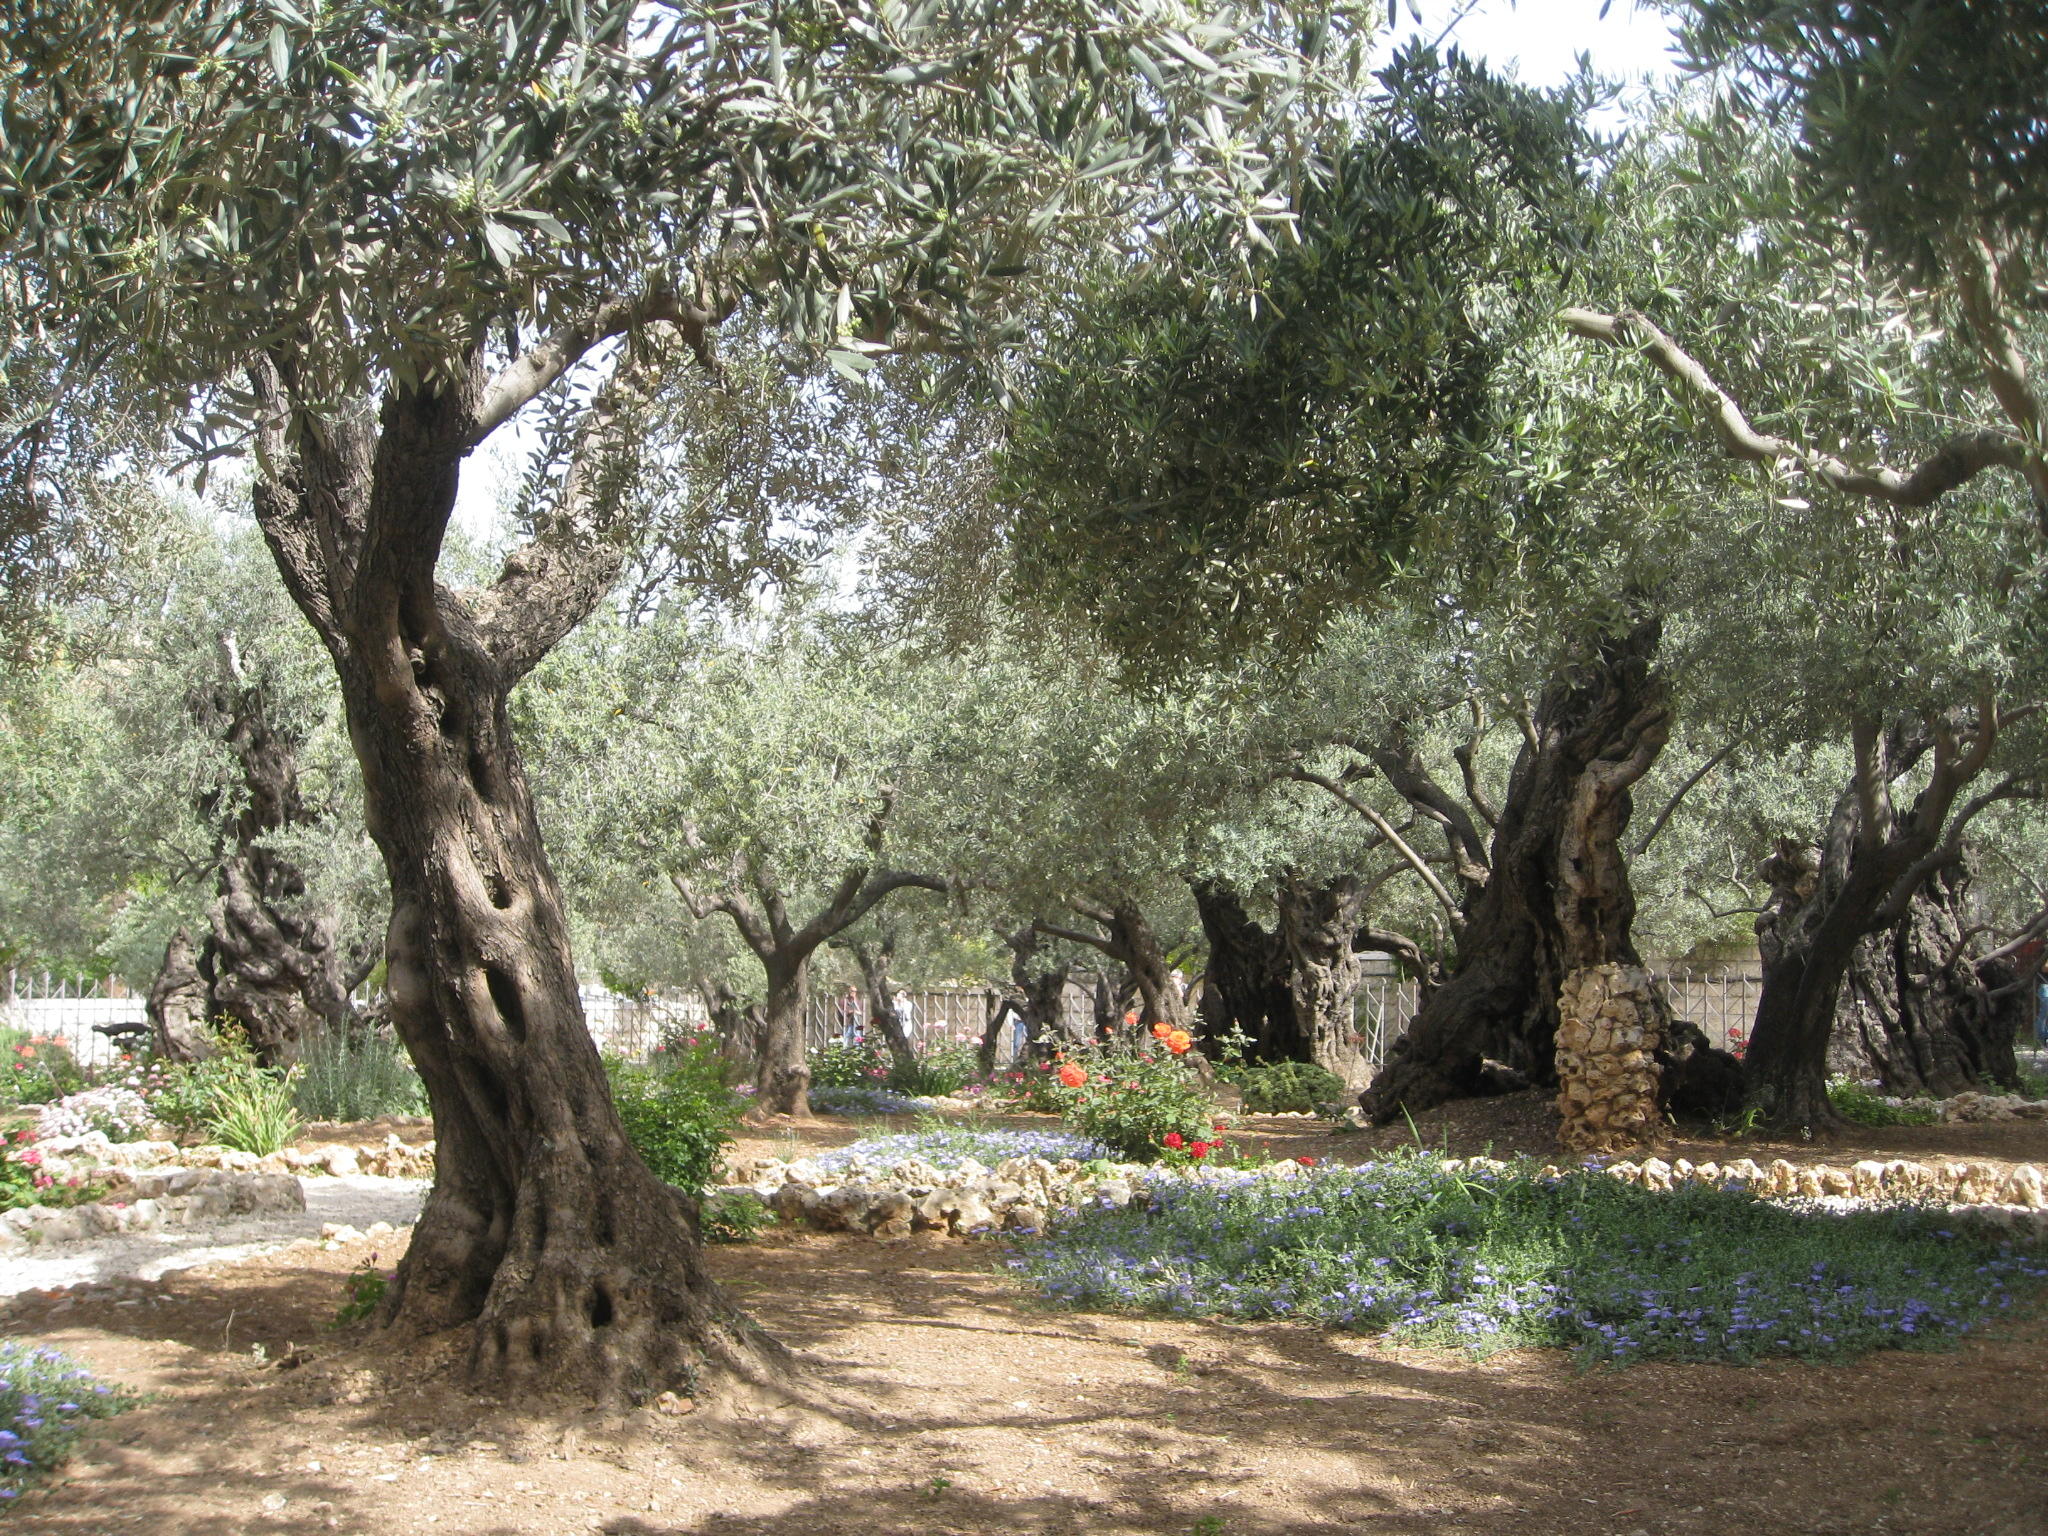 Garden of Gethsemane olive trees and garden BYU New Testament